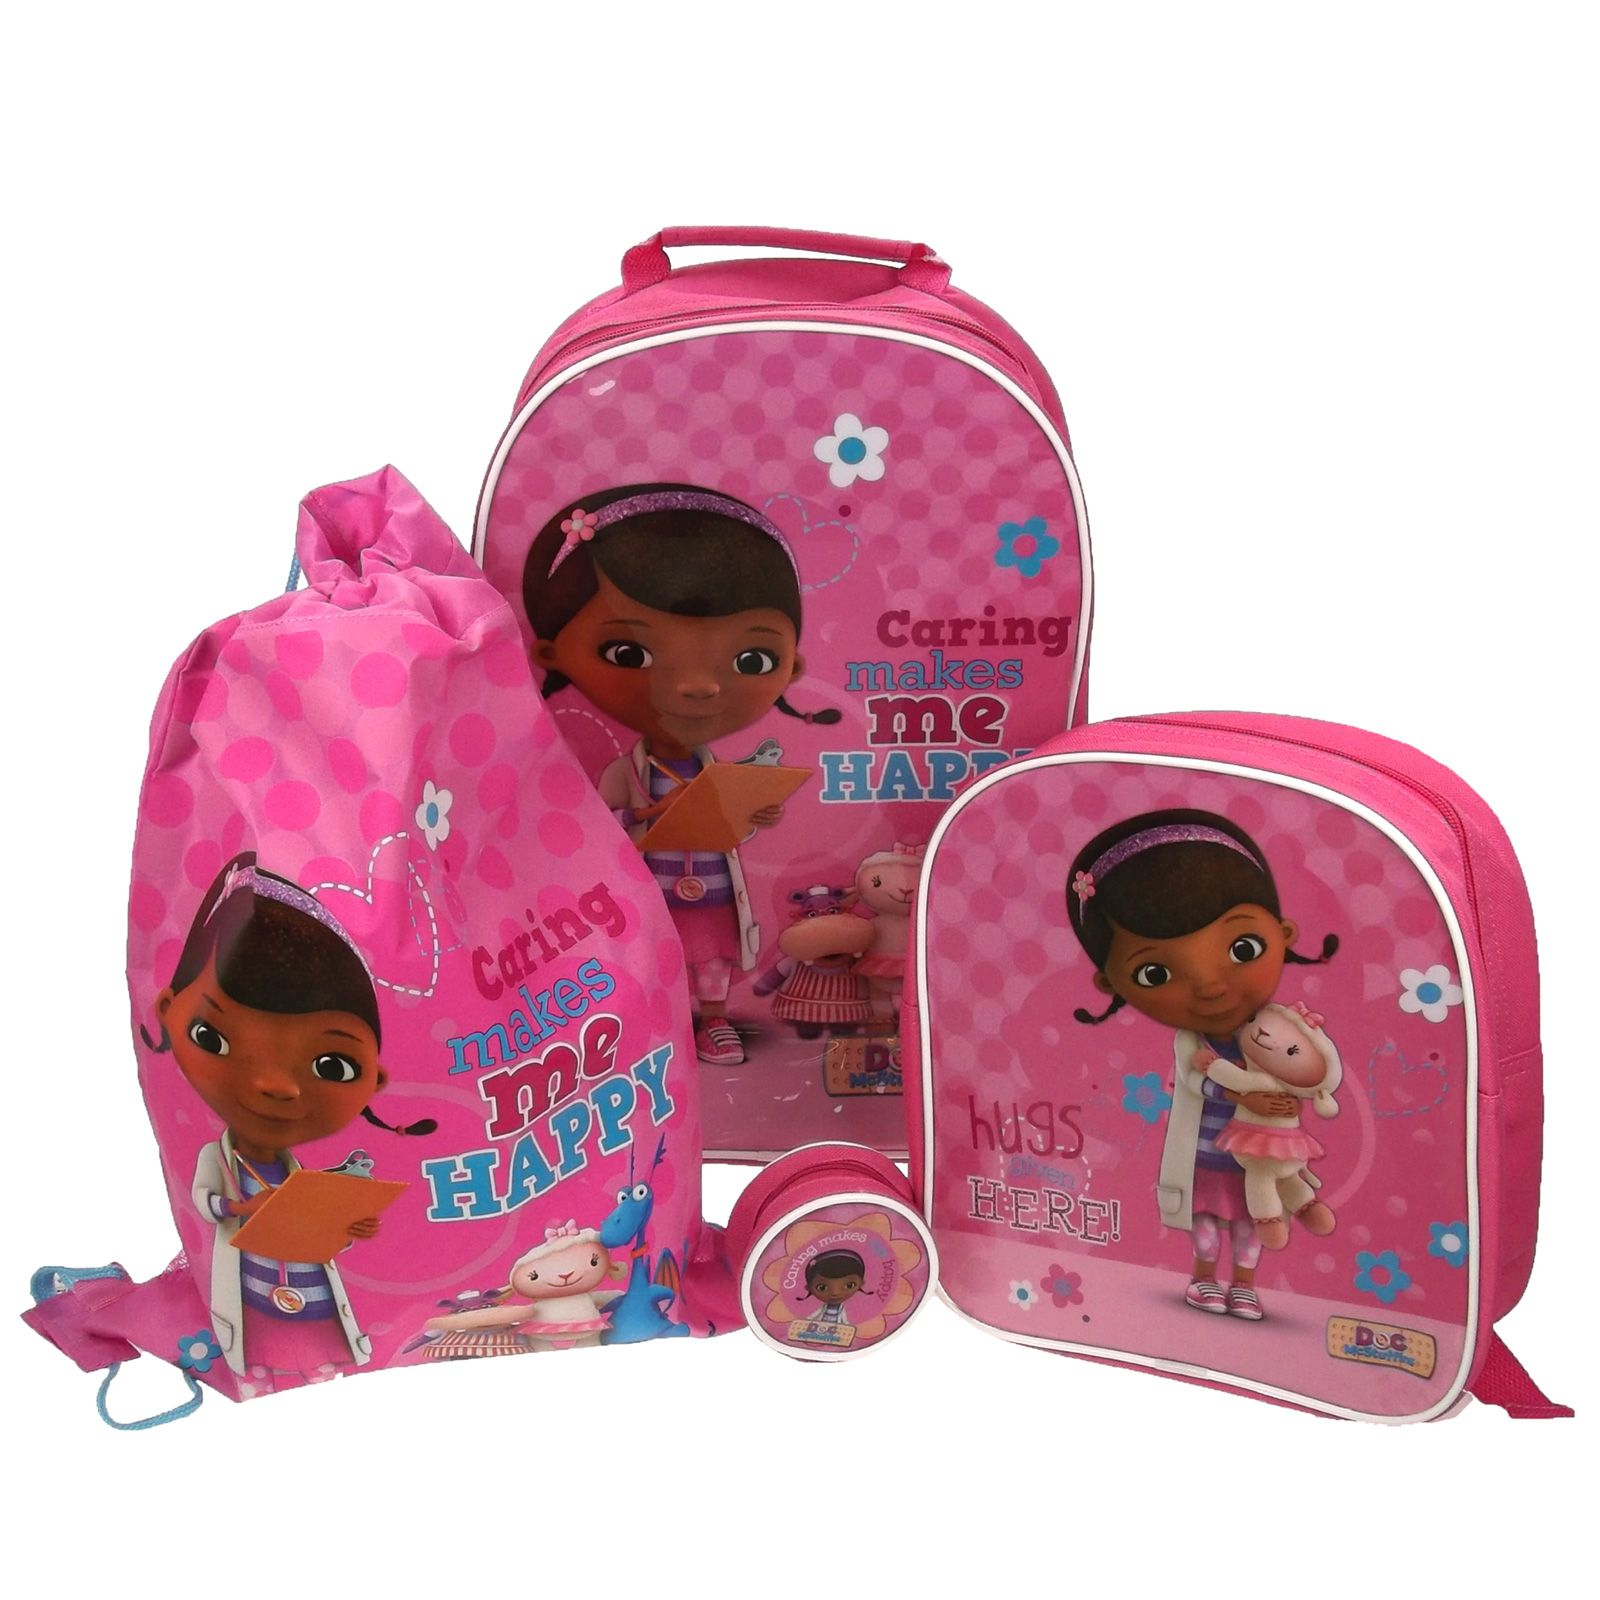 doc mcstuffins upholstered chair uk gothic revival chairs 4 piece luggage set trolley bag backpack